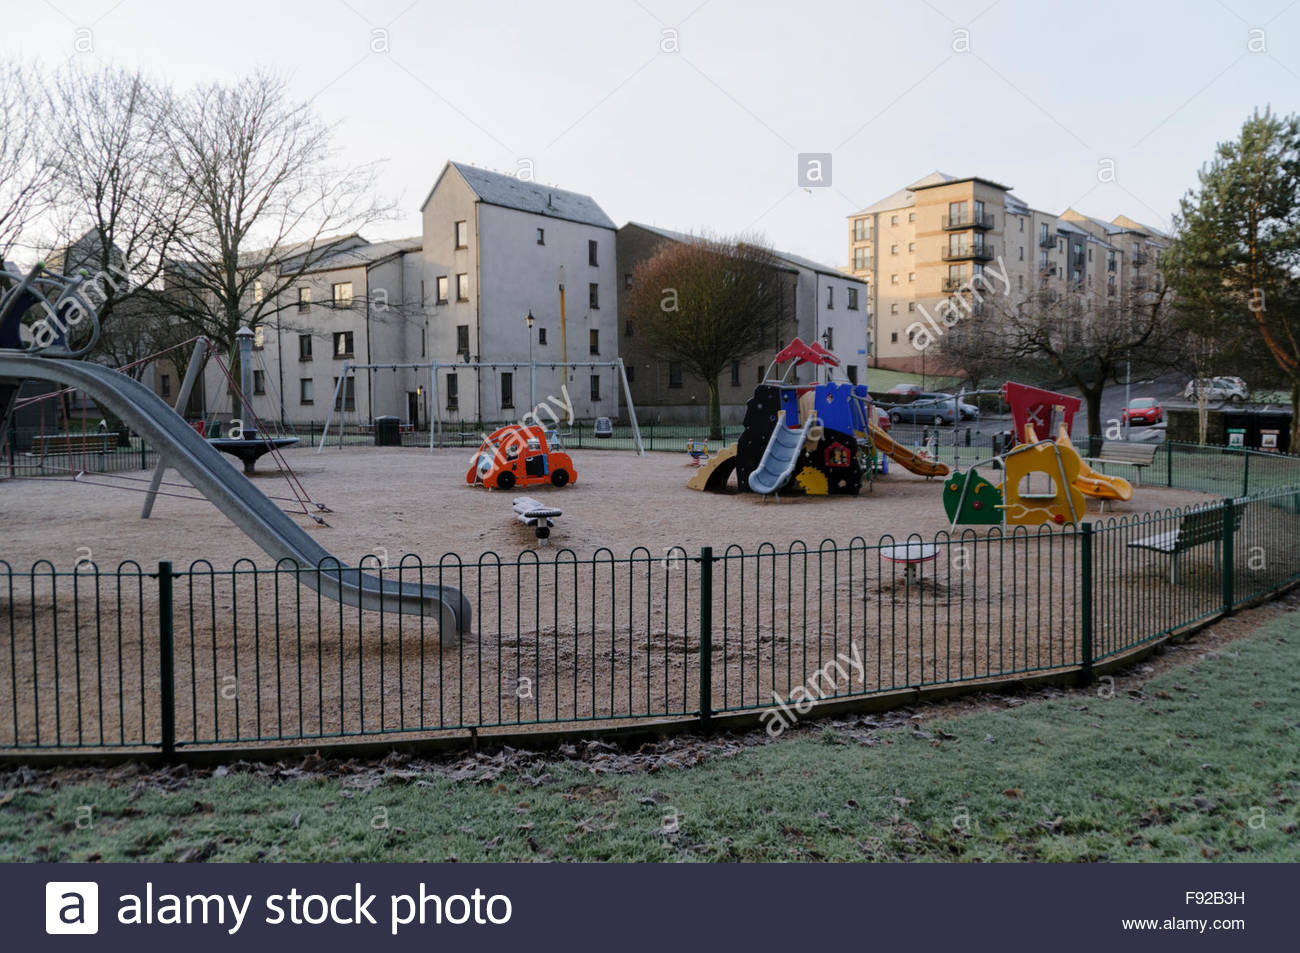 Linlithgow, UK. 13 December, 2015. UK Weather. Abandoned playground at Linlithgow Loch after the coldest night so - Stock Image